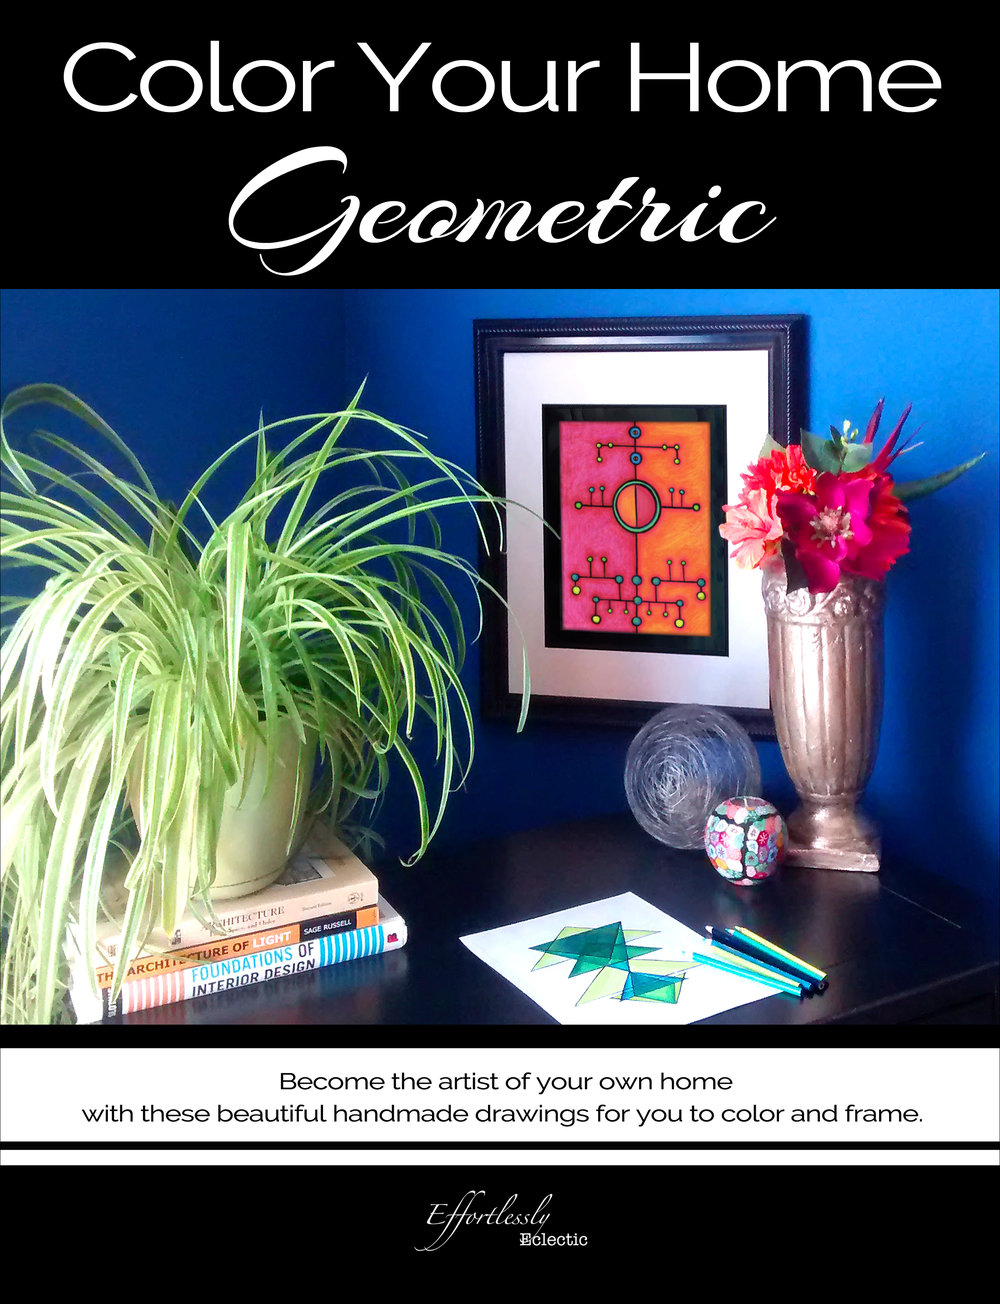 Color Your Home Geometric - Effortlessly Eclectic